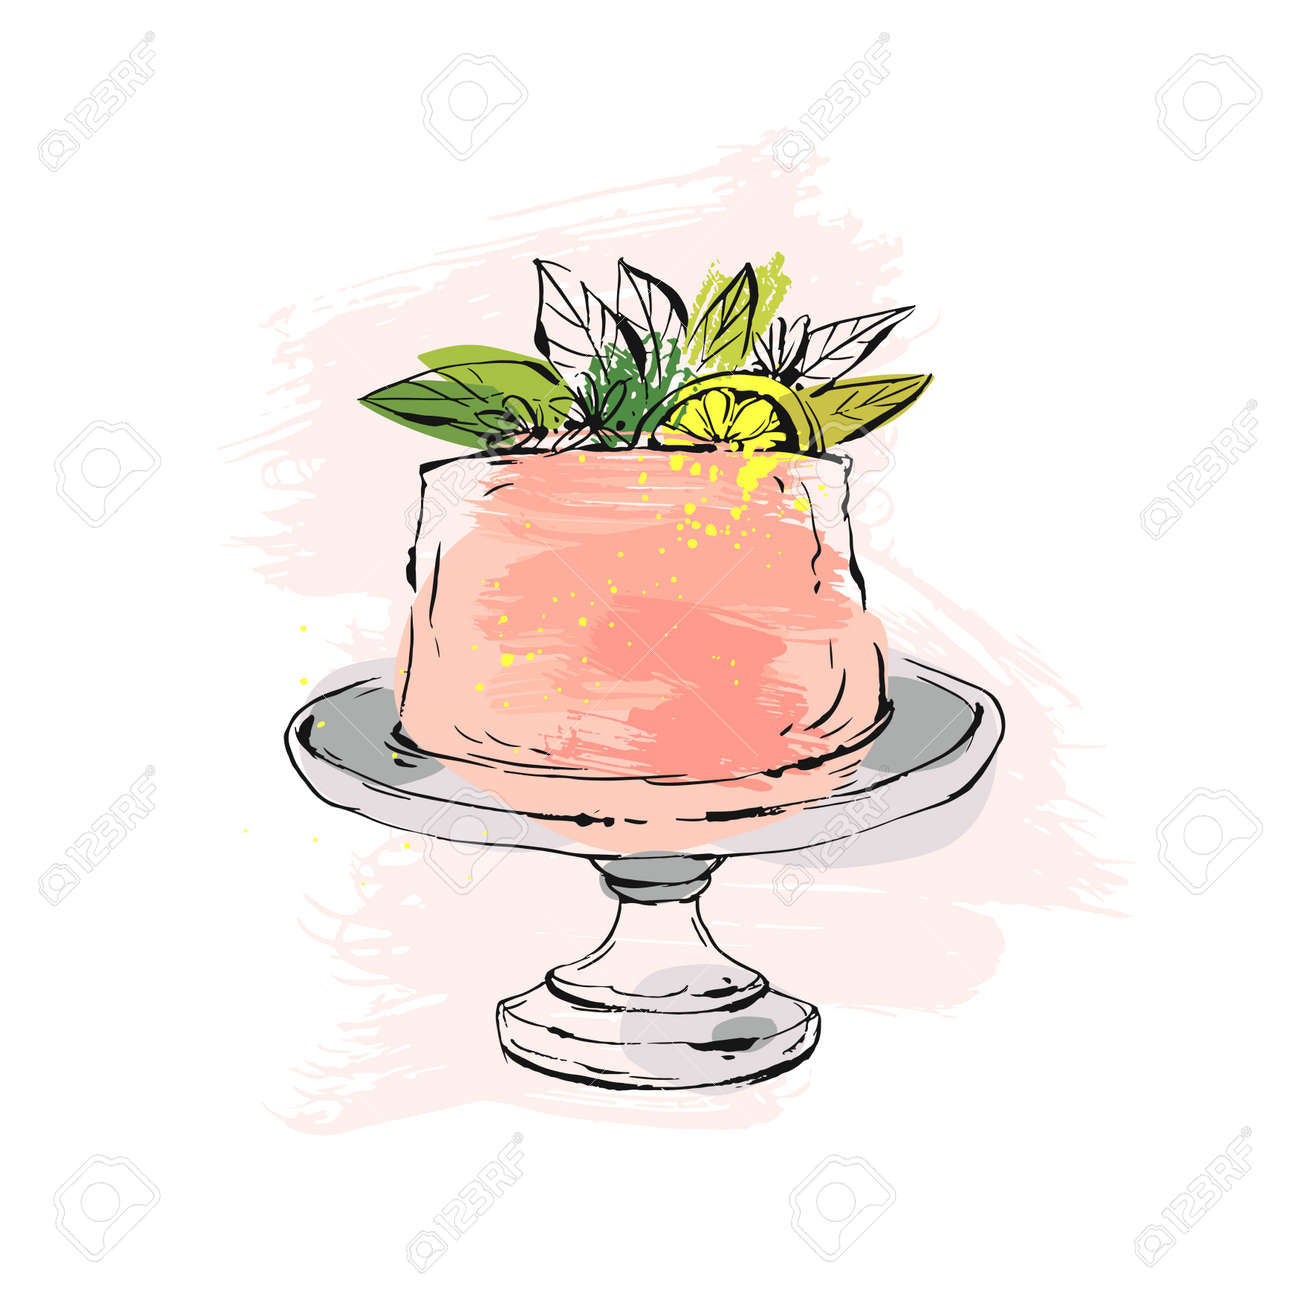 Hand drawn vector abstract watercolor textured cake on cake stand with lemon,flowers and leaves in peach colors isolated on white background.Wedding, art,anniversary,birthday,save the date,cake shop - 78021714